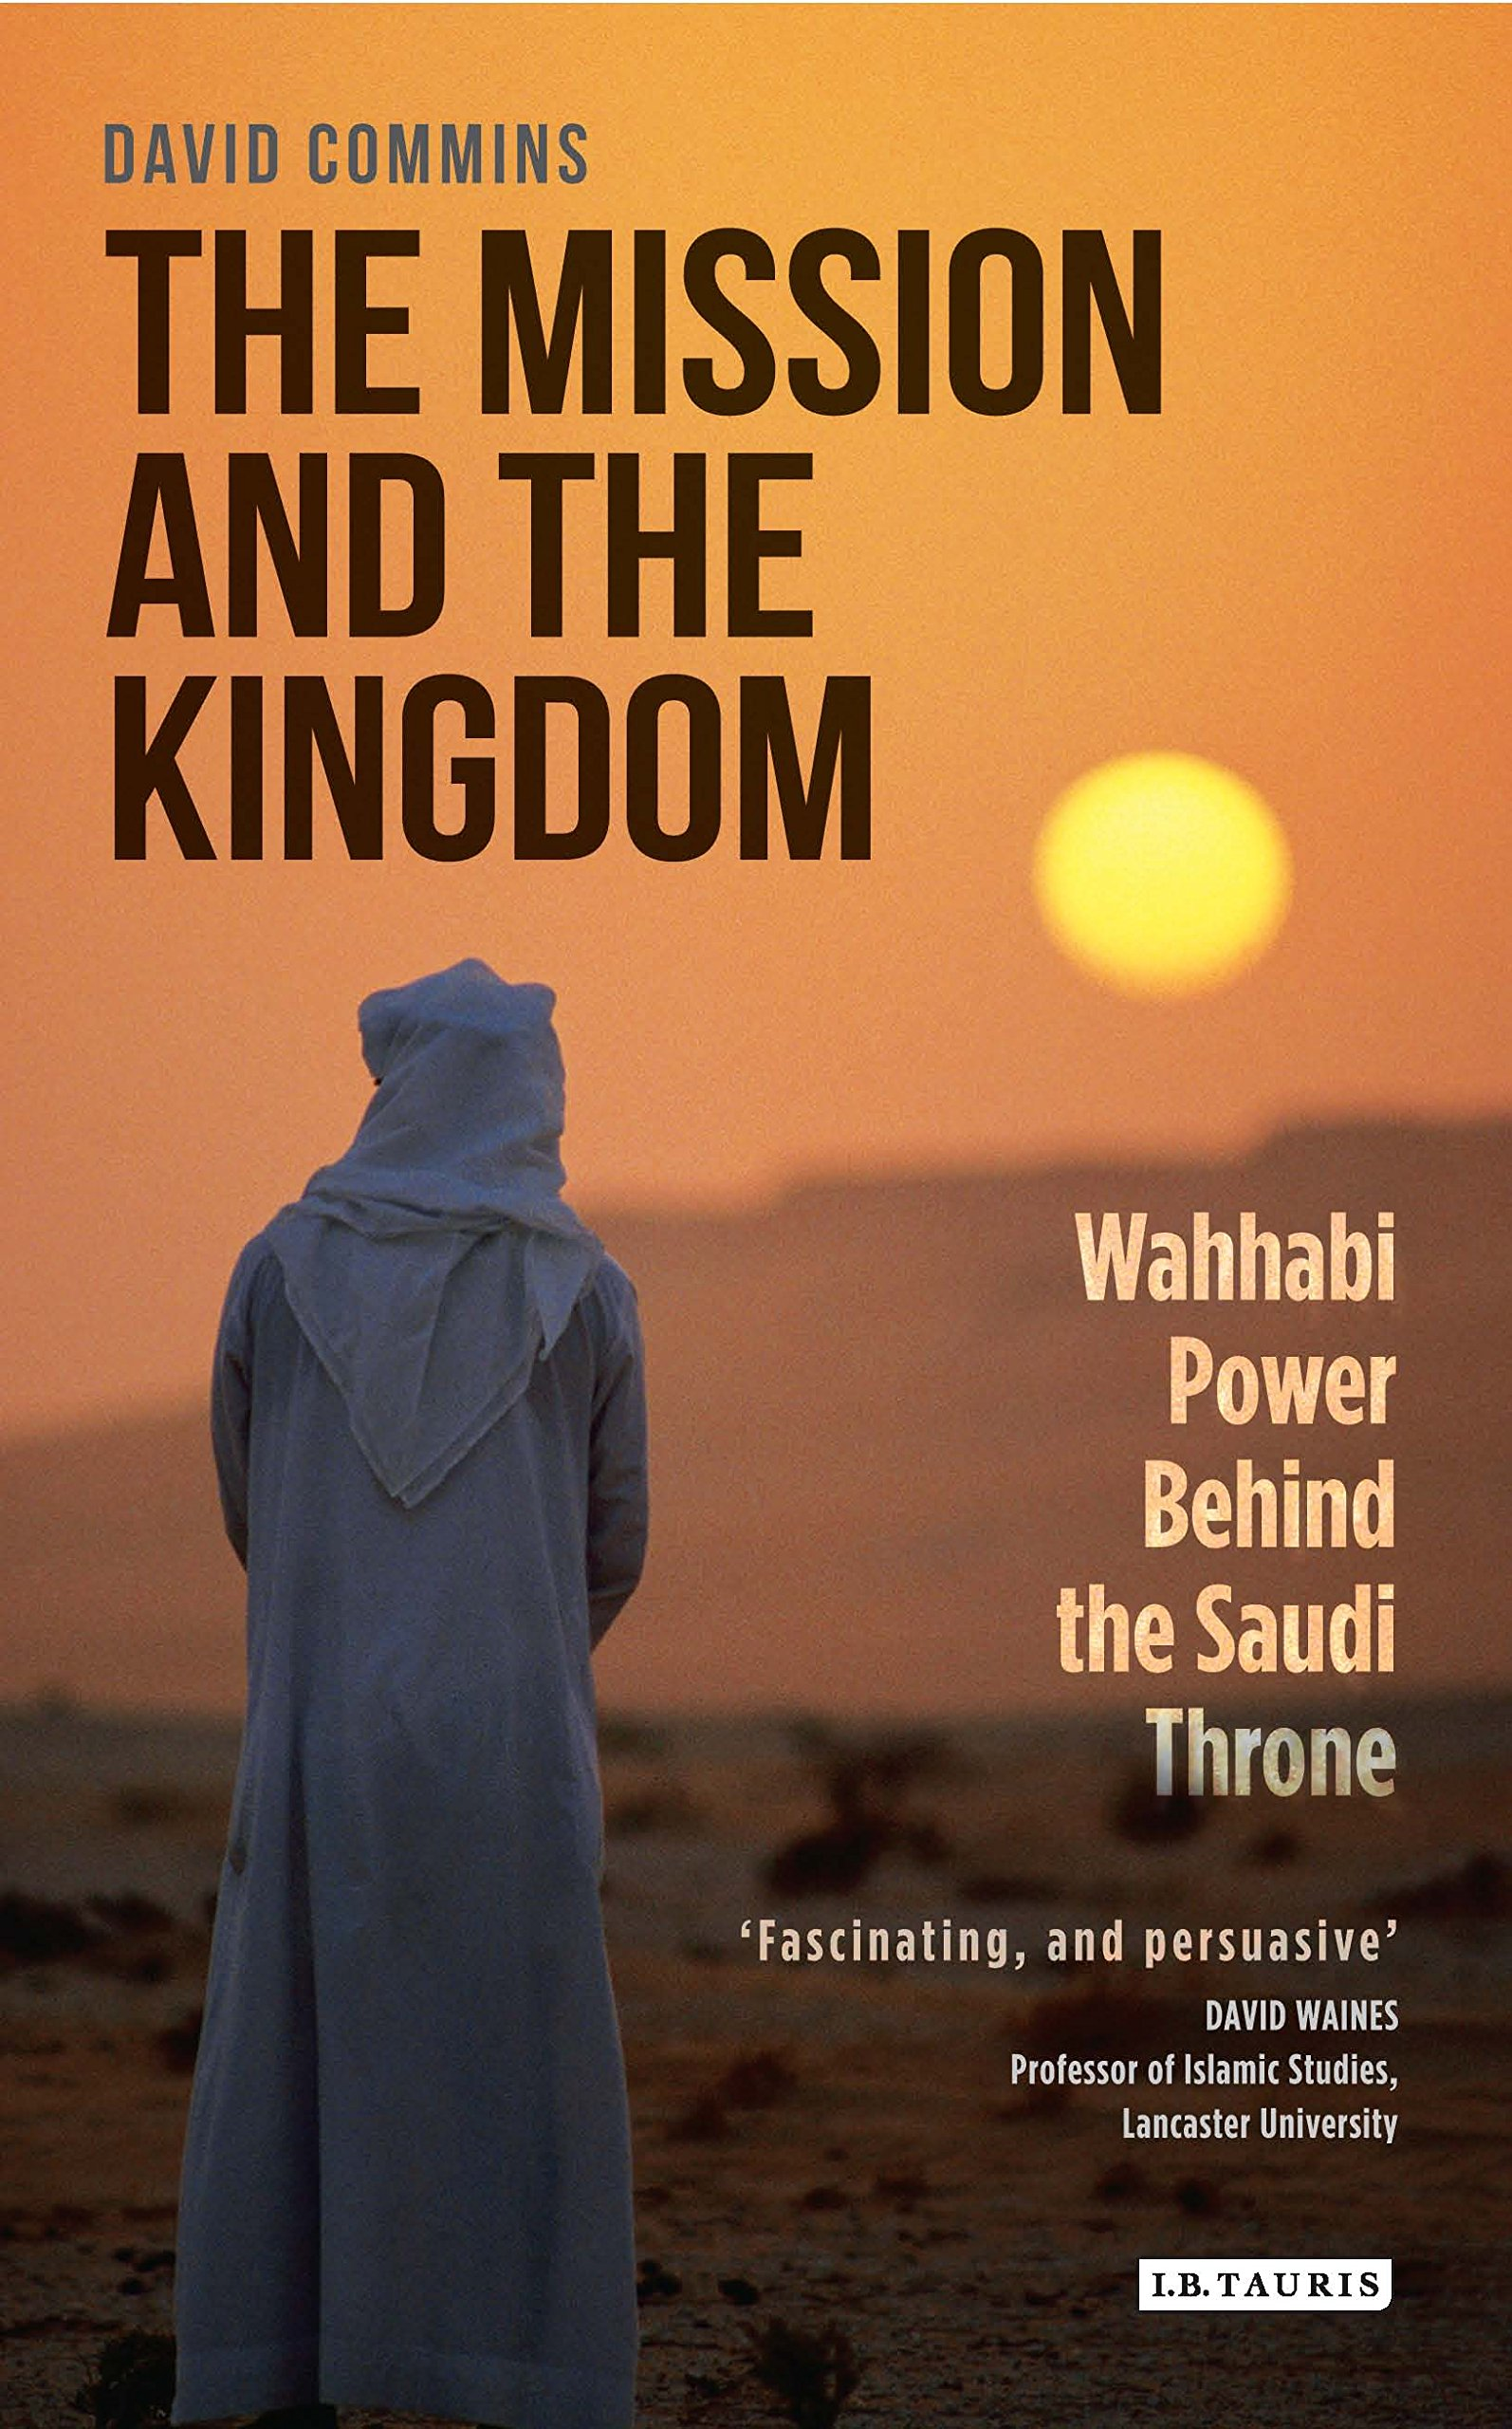 The Mission And The Kingdom: Wahhabi Power Behind The Saudi Throne: David Mins: 9781784536824: Amazon: Books